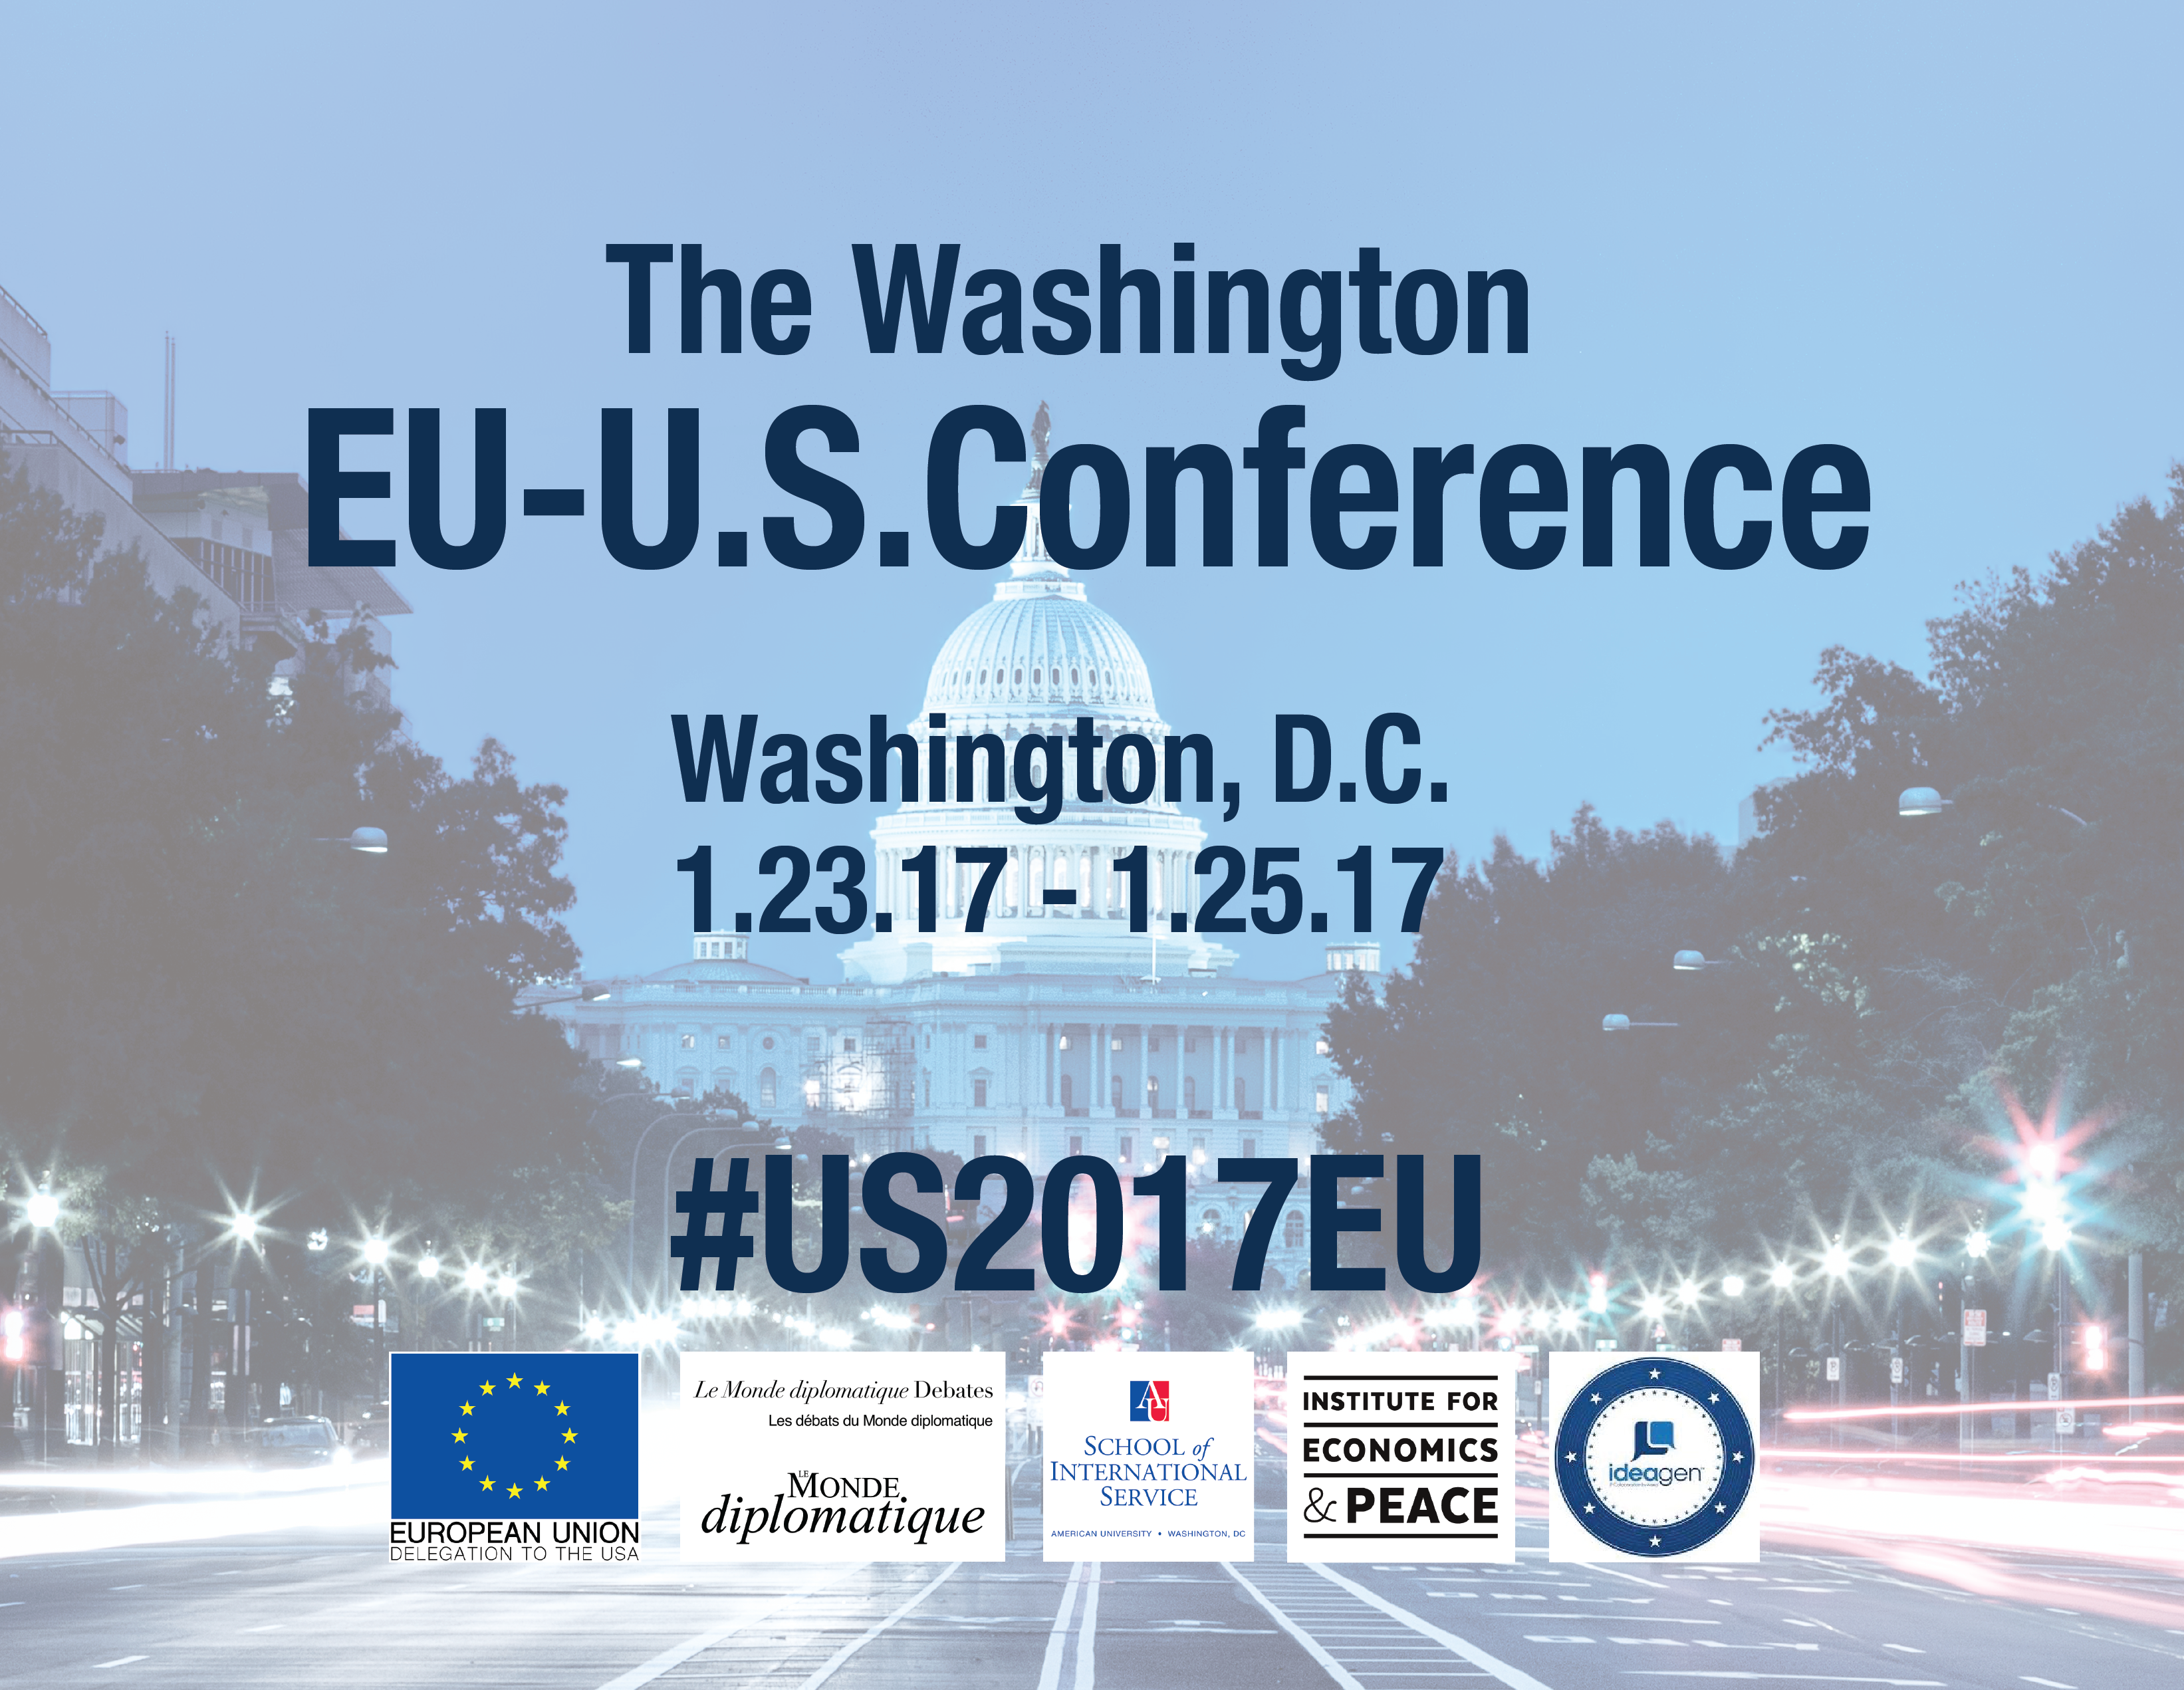 EU-US Washington conference_visual identity_final